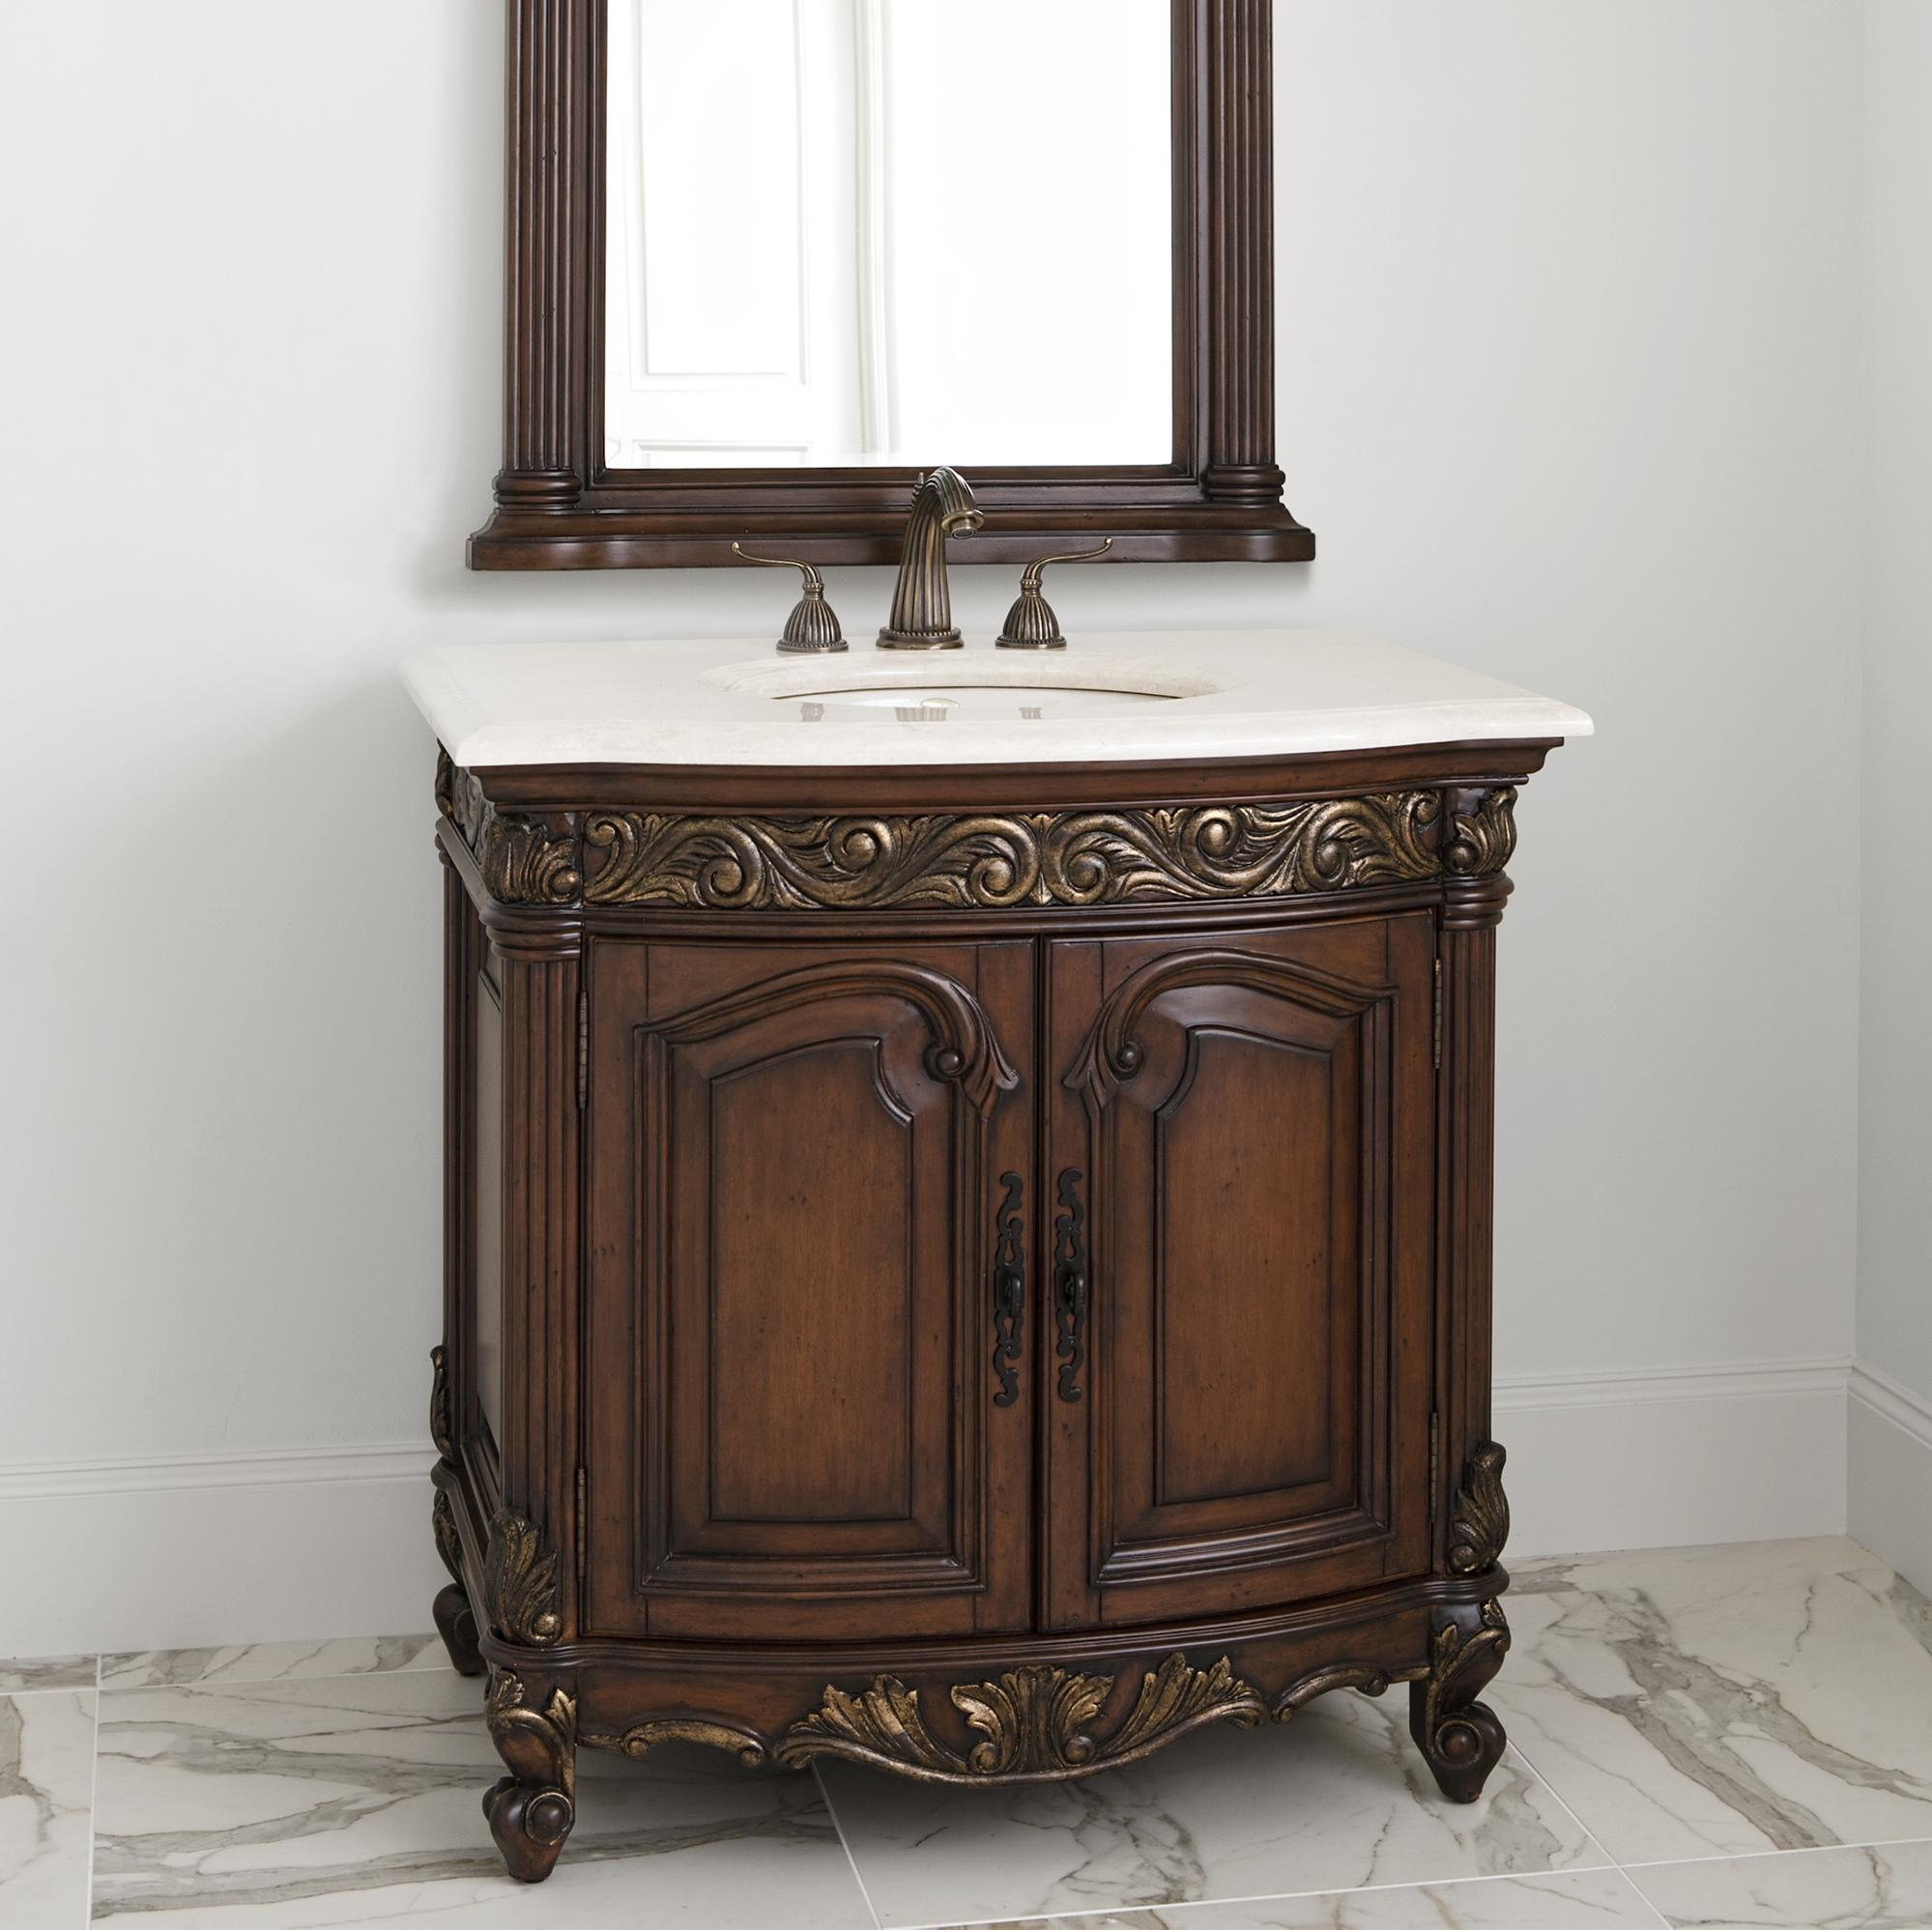 Fairmont Designs Bathroom Vanities How To Choose A Bathroom Vanity Abode